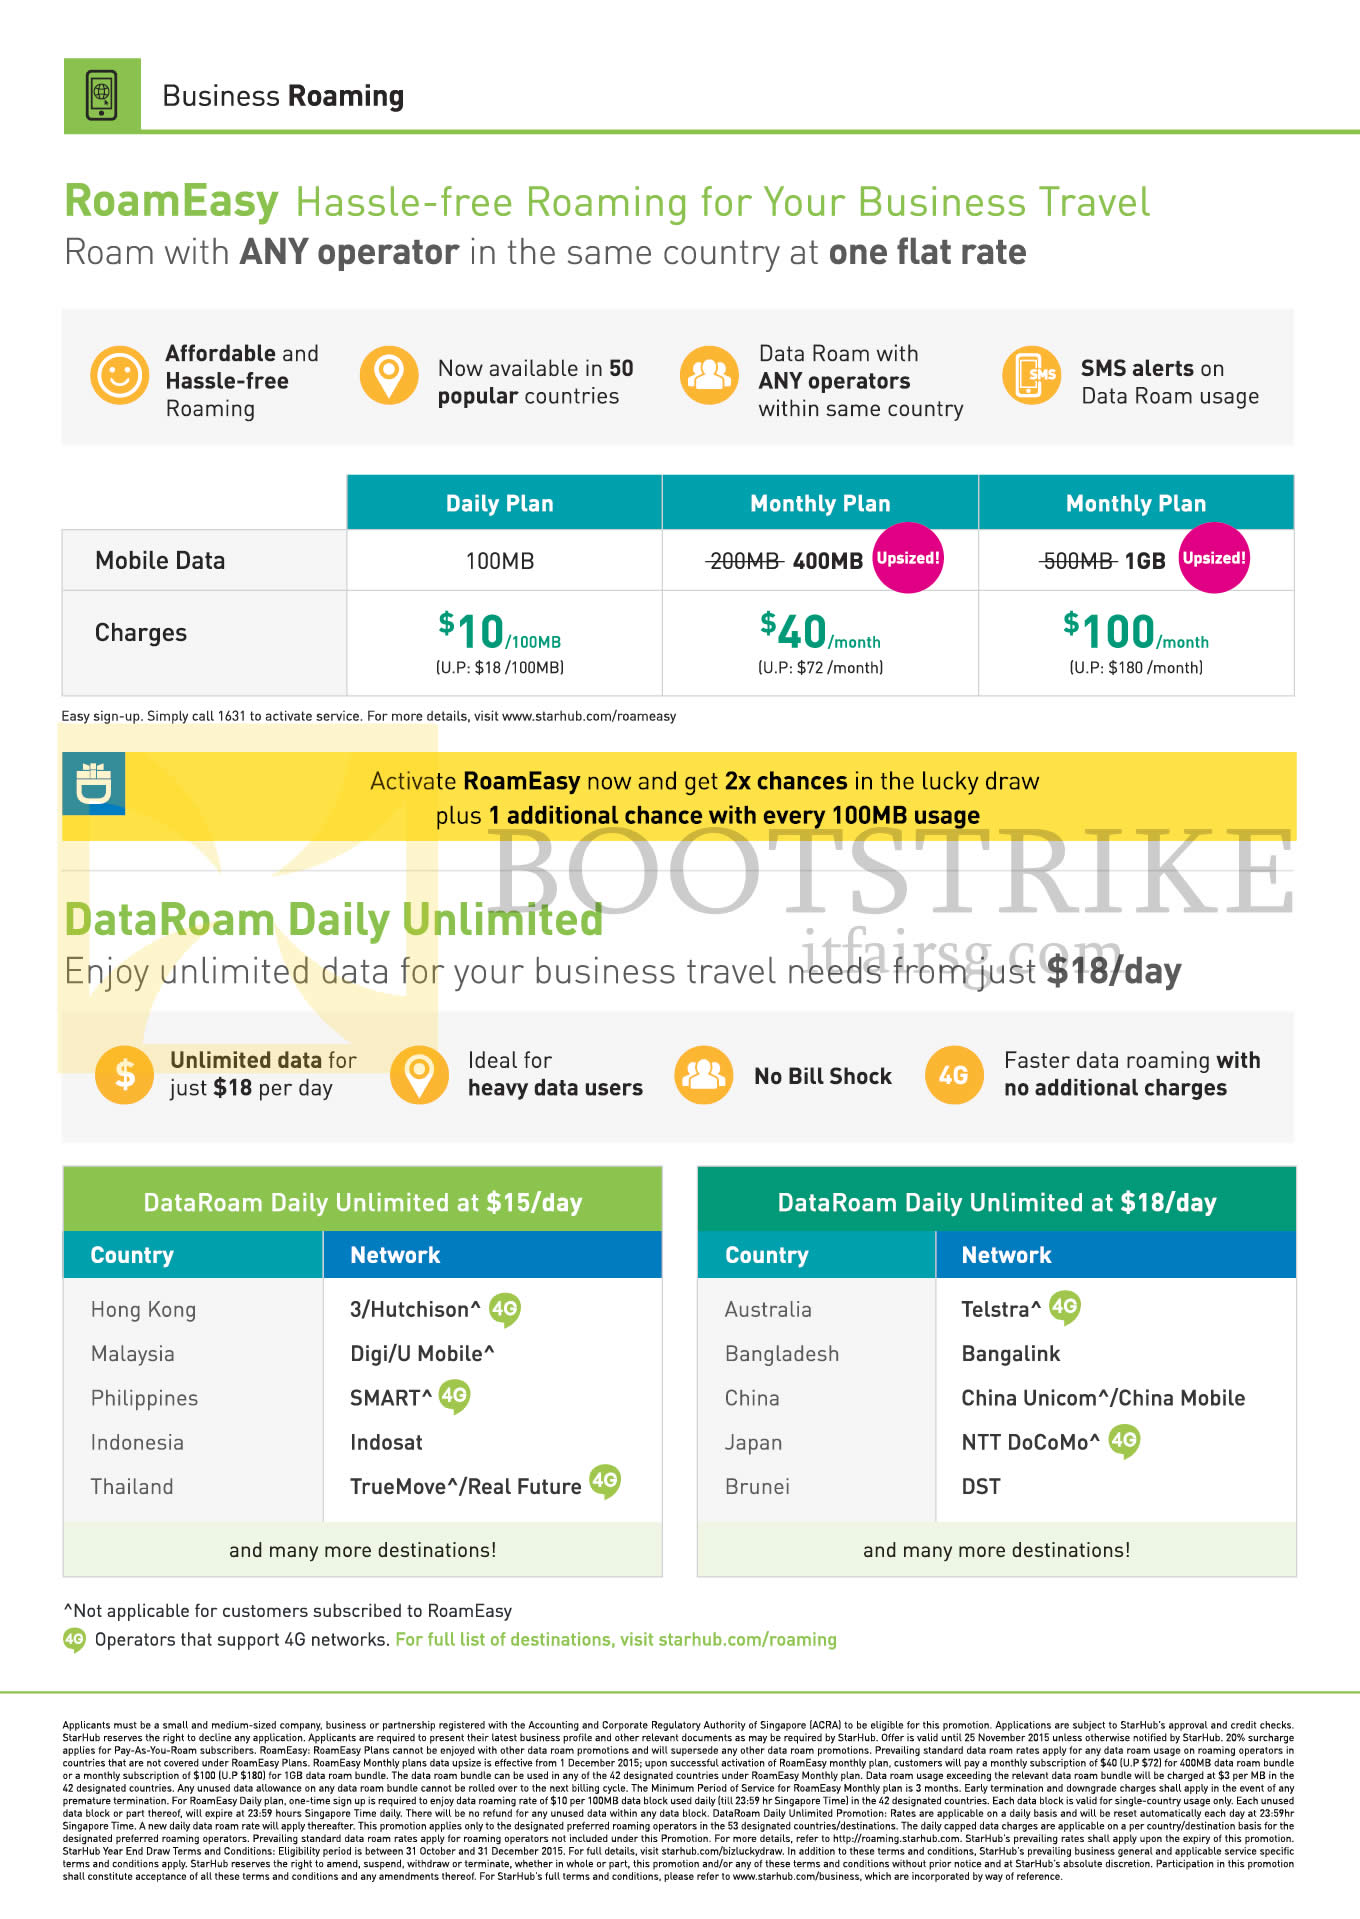 SITEX 2015 price list image brochure of Starhub Business RoamEasy Daily, Monthly Plans 10.00, 40.00, 100.00, DataRoam Daily Unlimited 15.00, 18.00